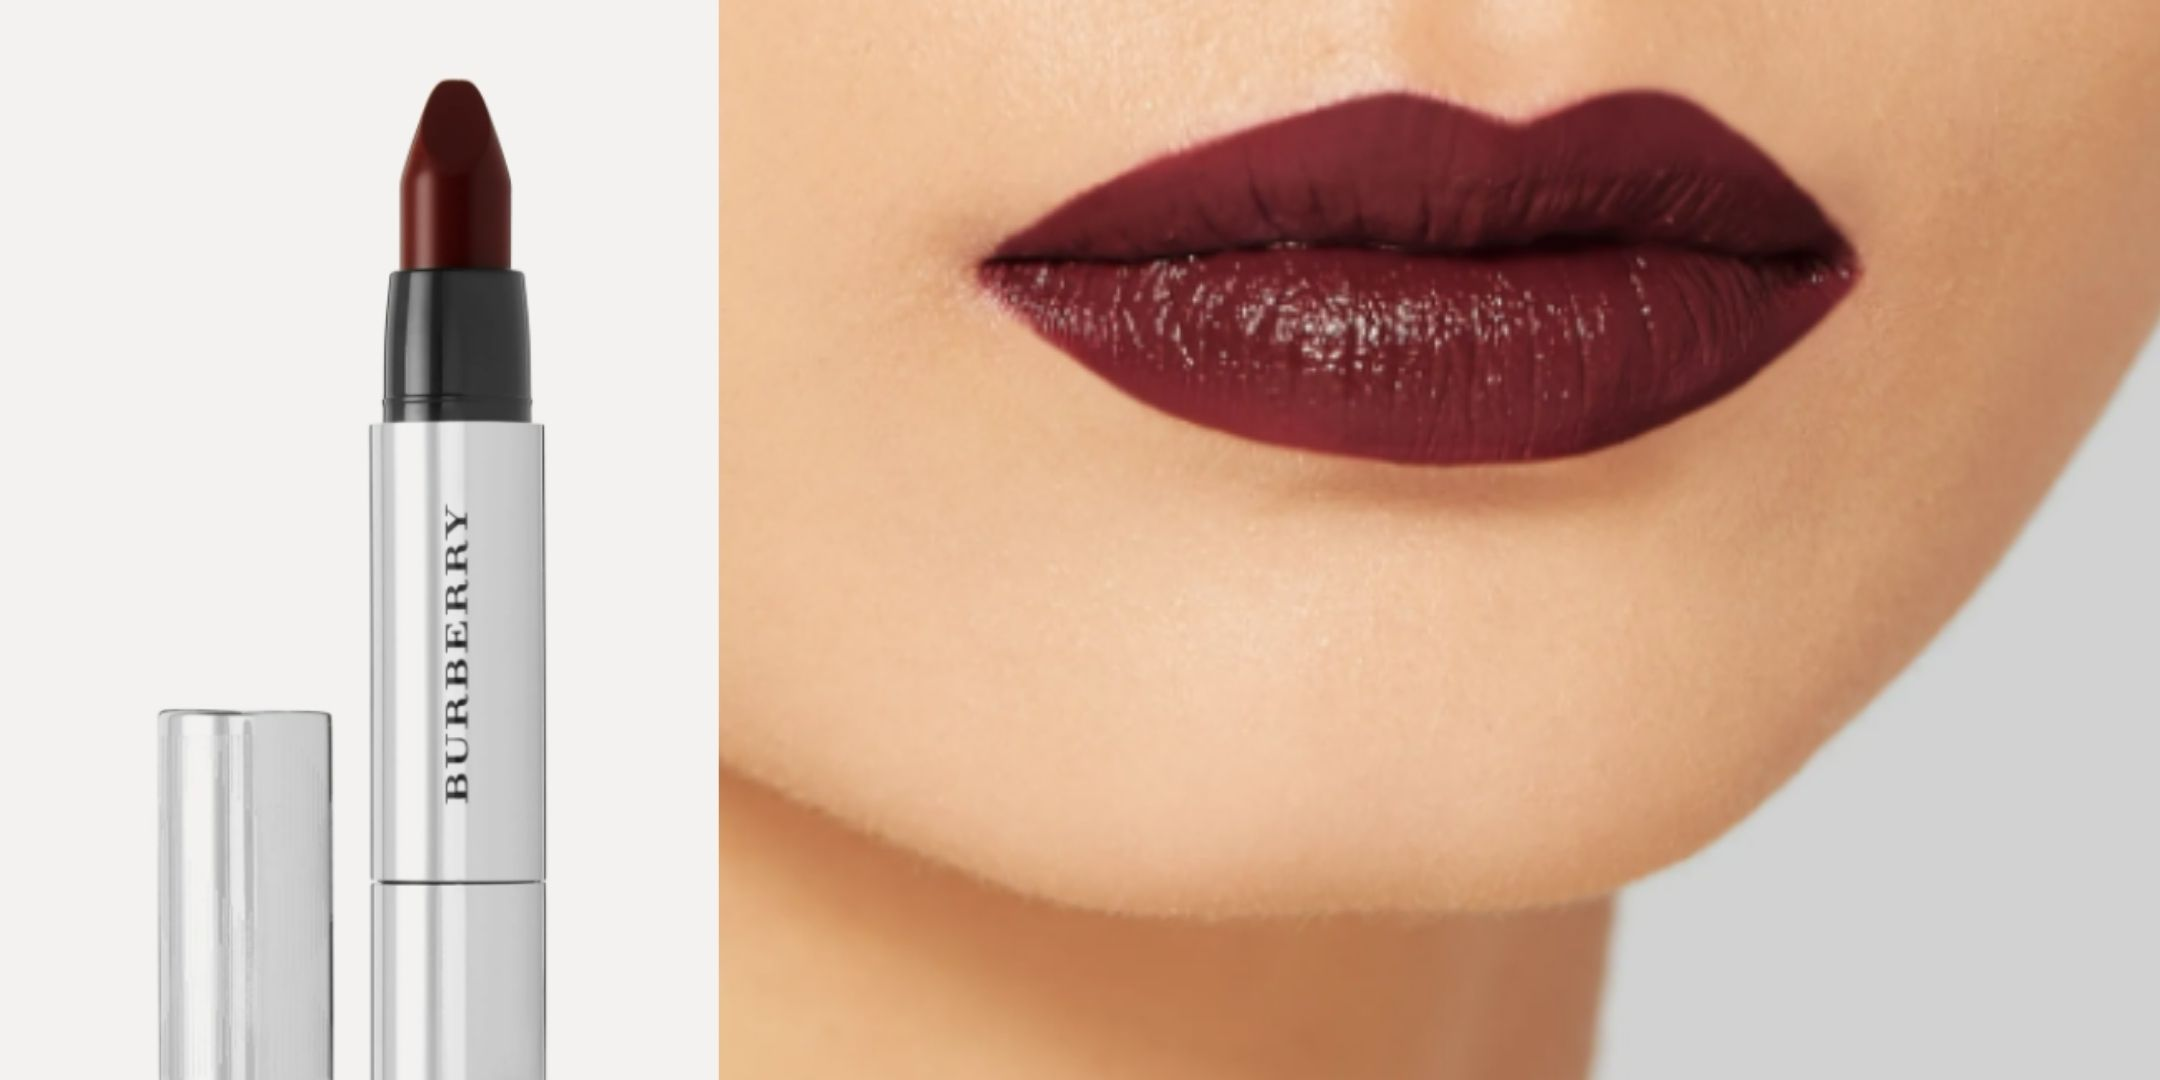 Burberry Full Kisses in Oxblood No. 549